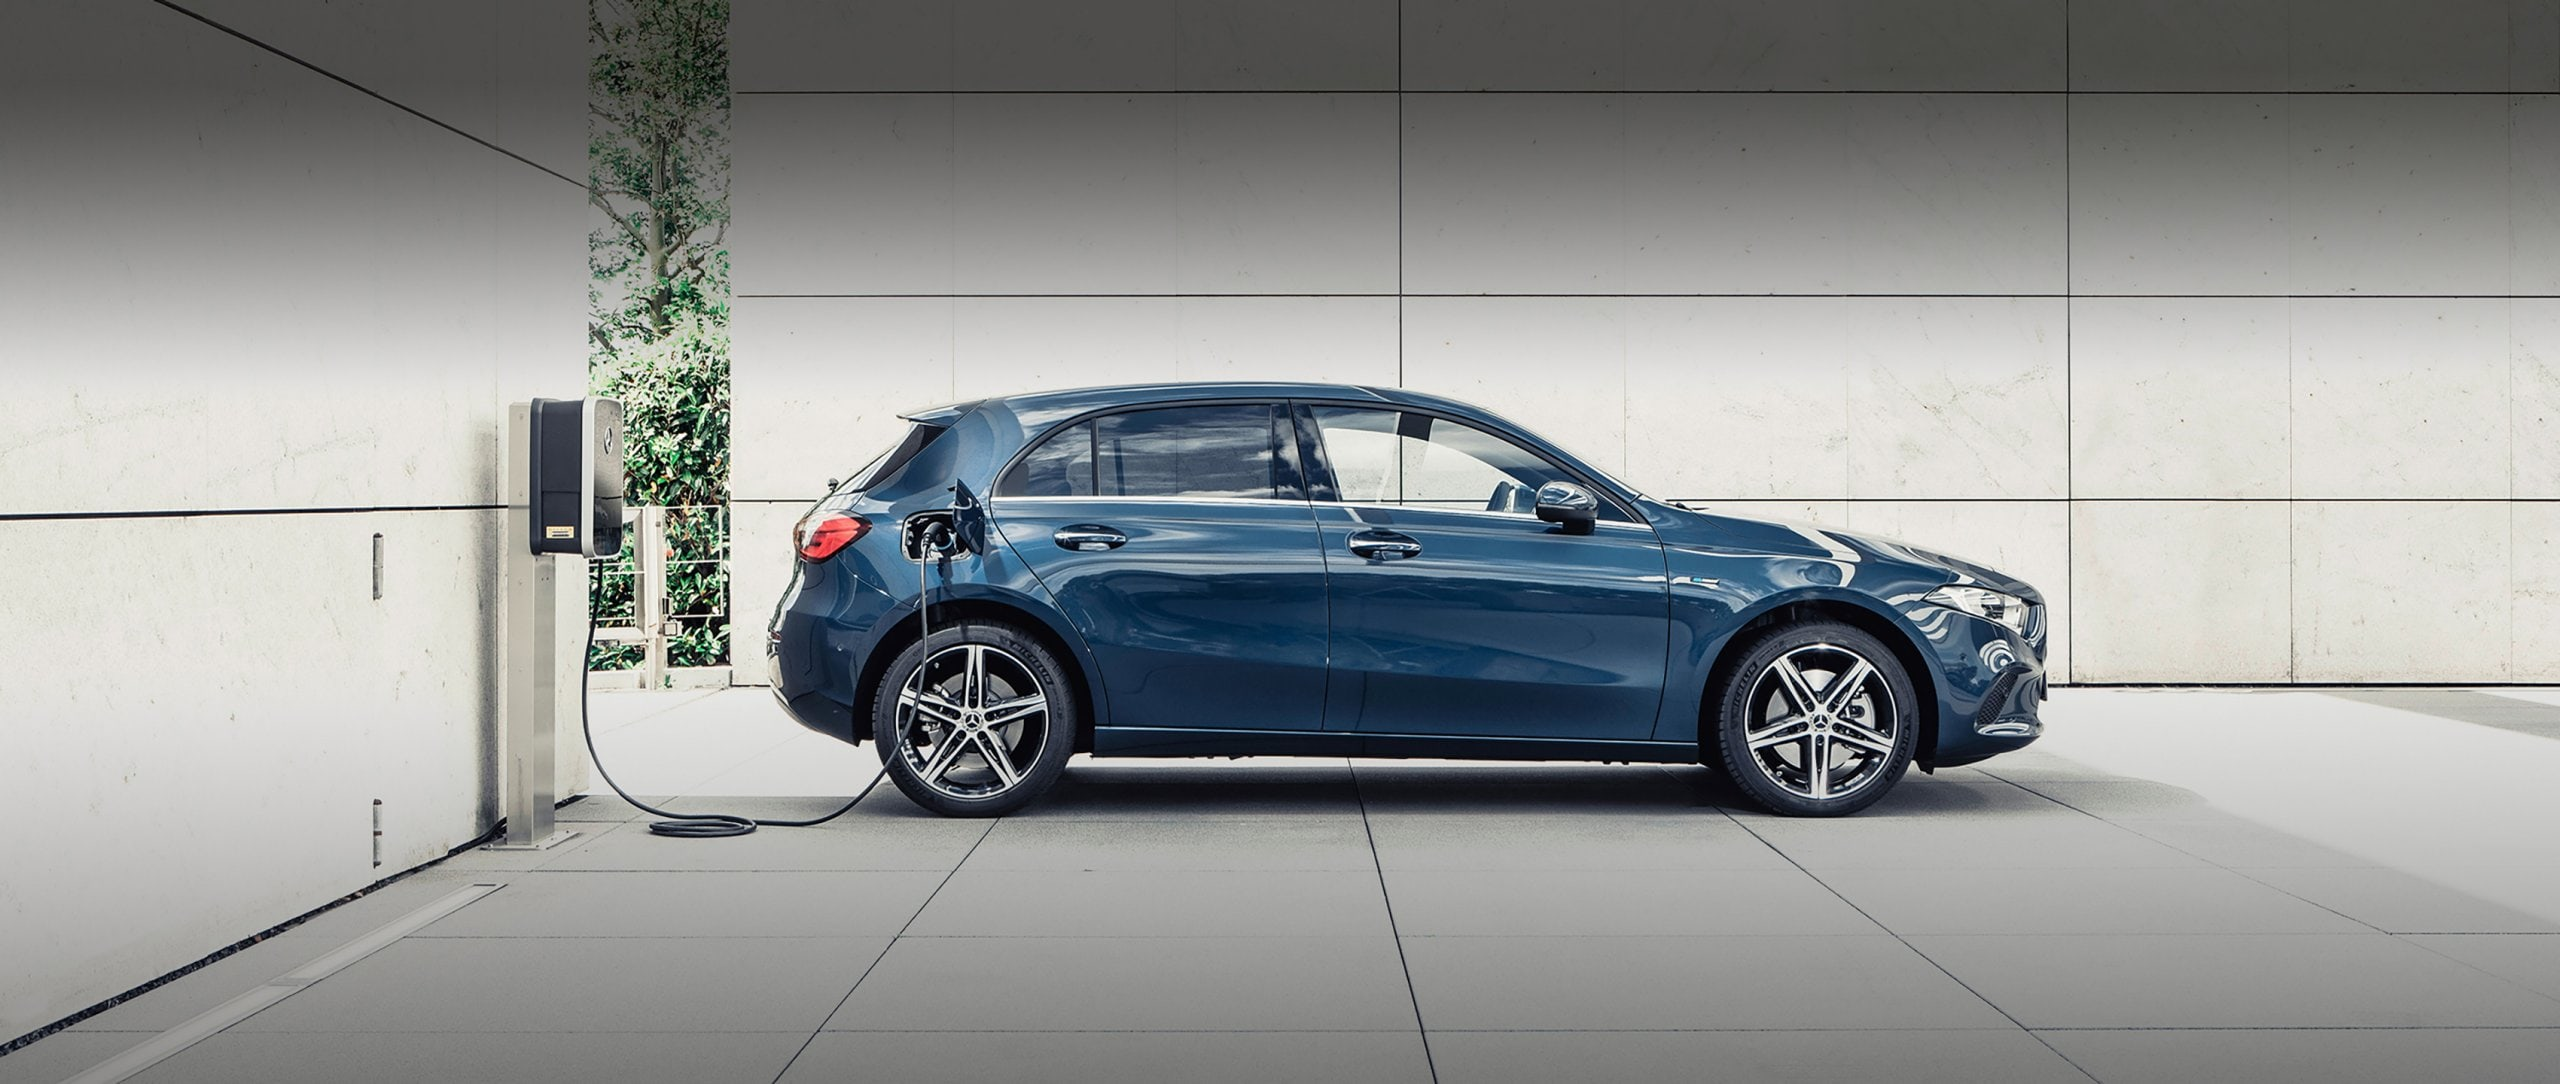 The Mercedes-Benz A-Class standing at a charging station.